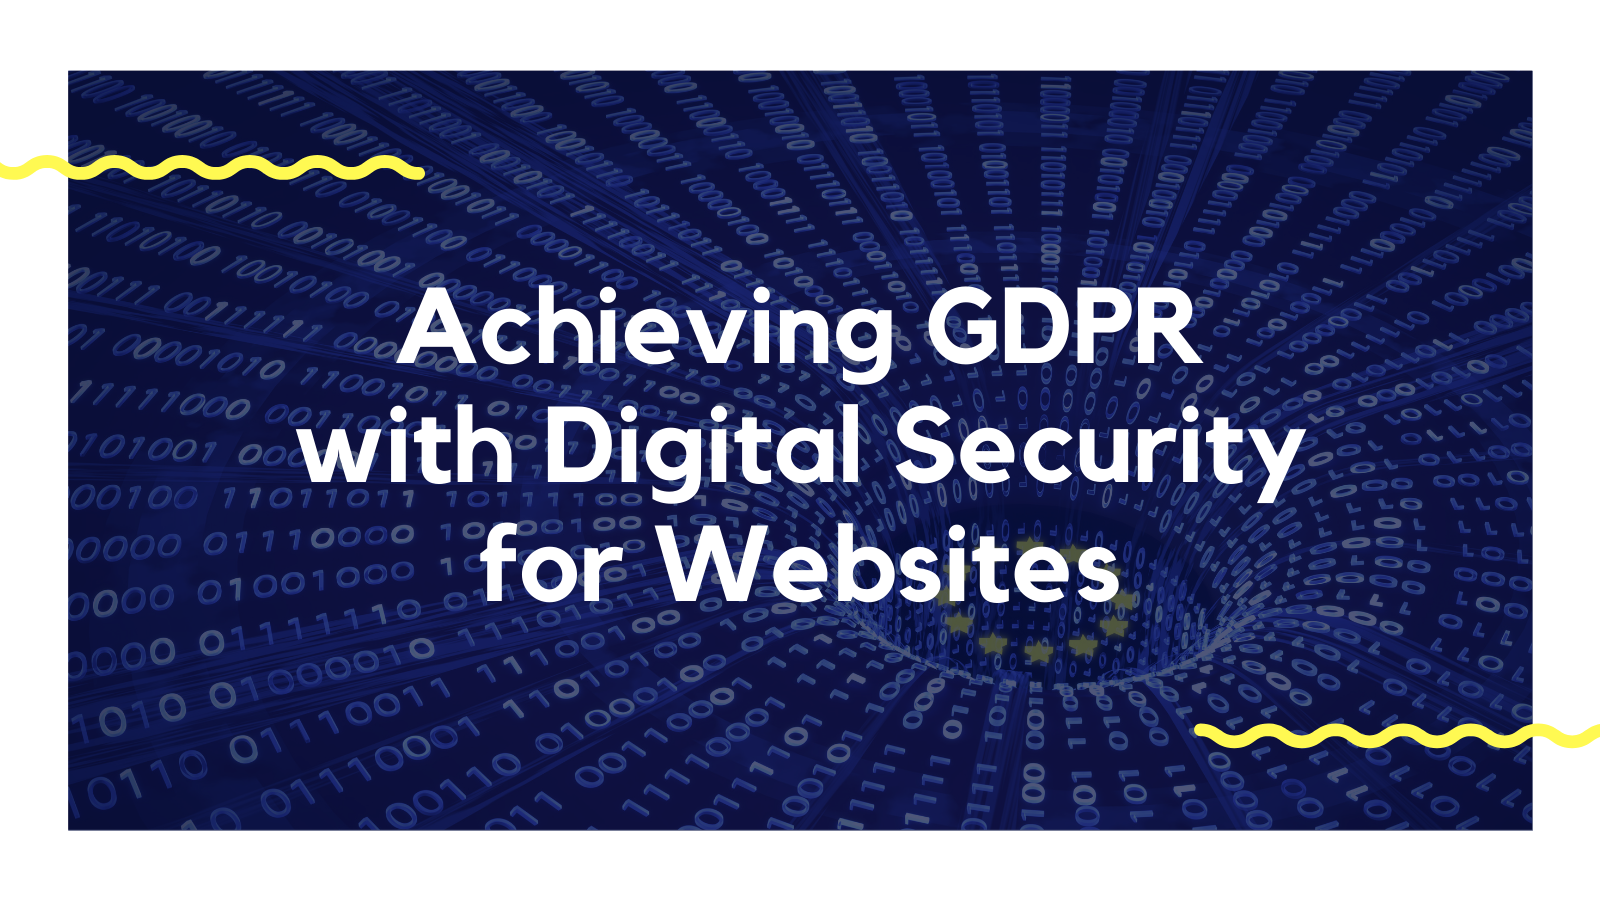 Achieving GDPR with Digital Security for Websites